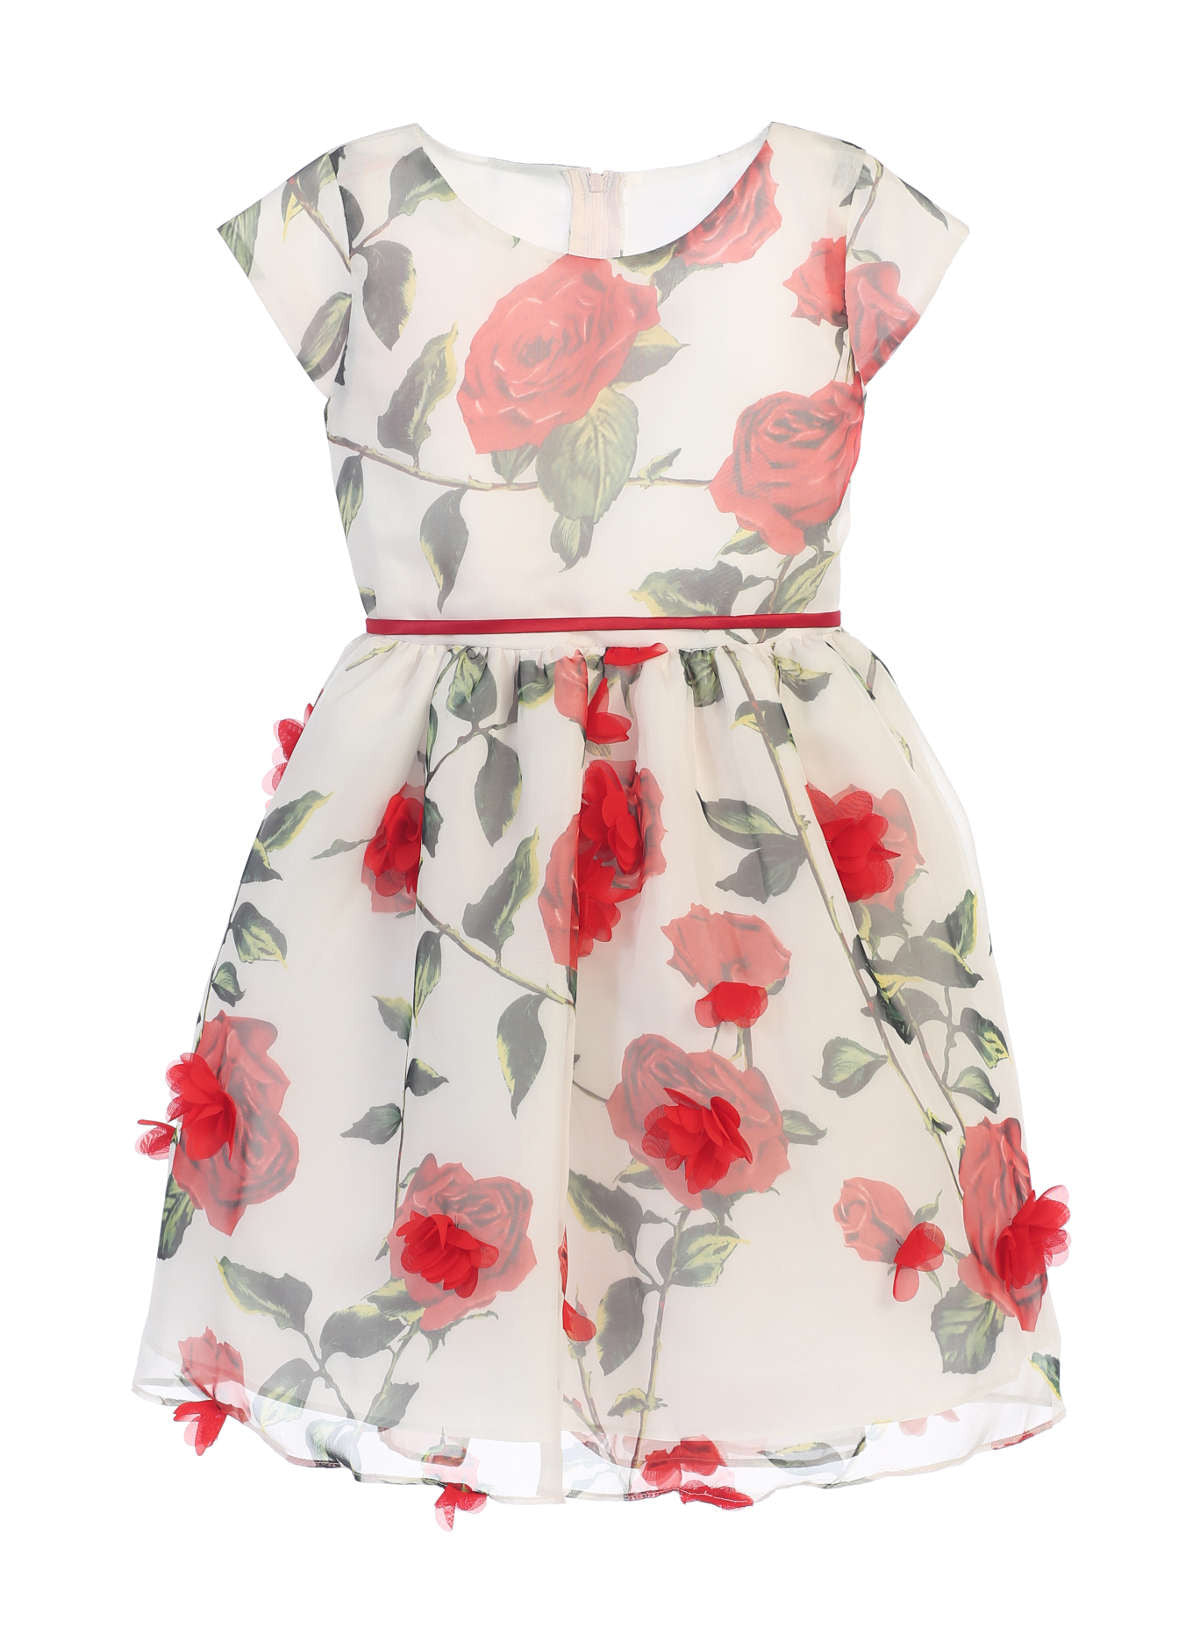 Sweet Kids Rose Chiffon with Petal Skirt Dress - Off White, SK672